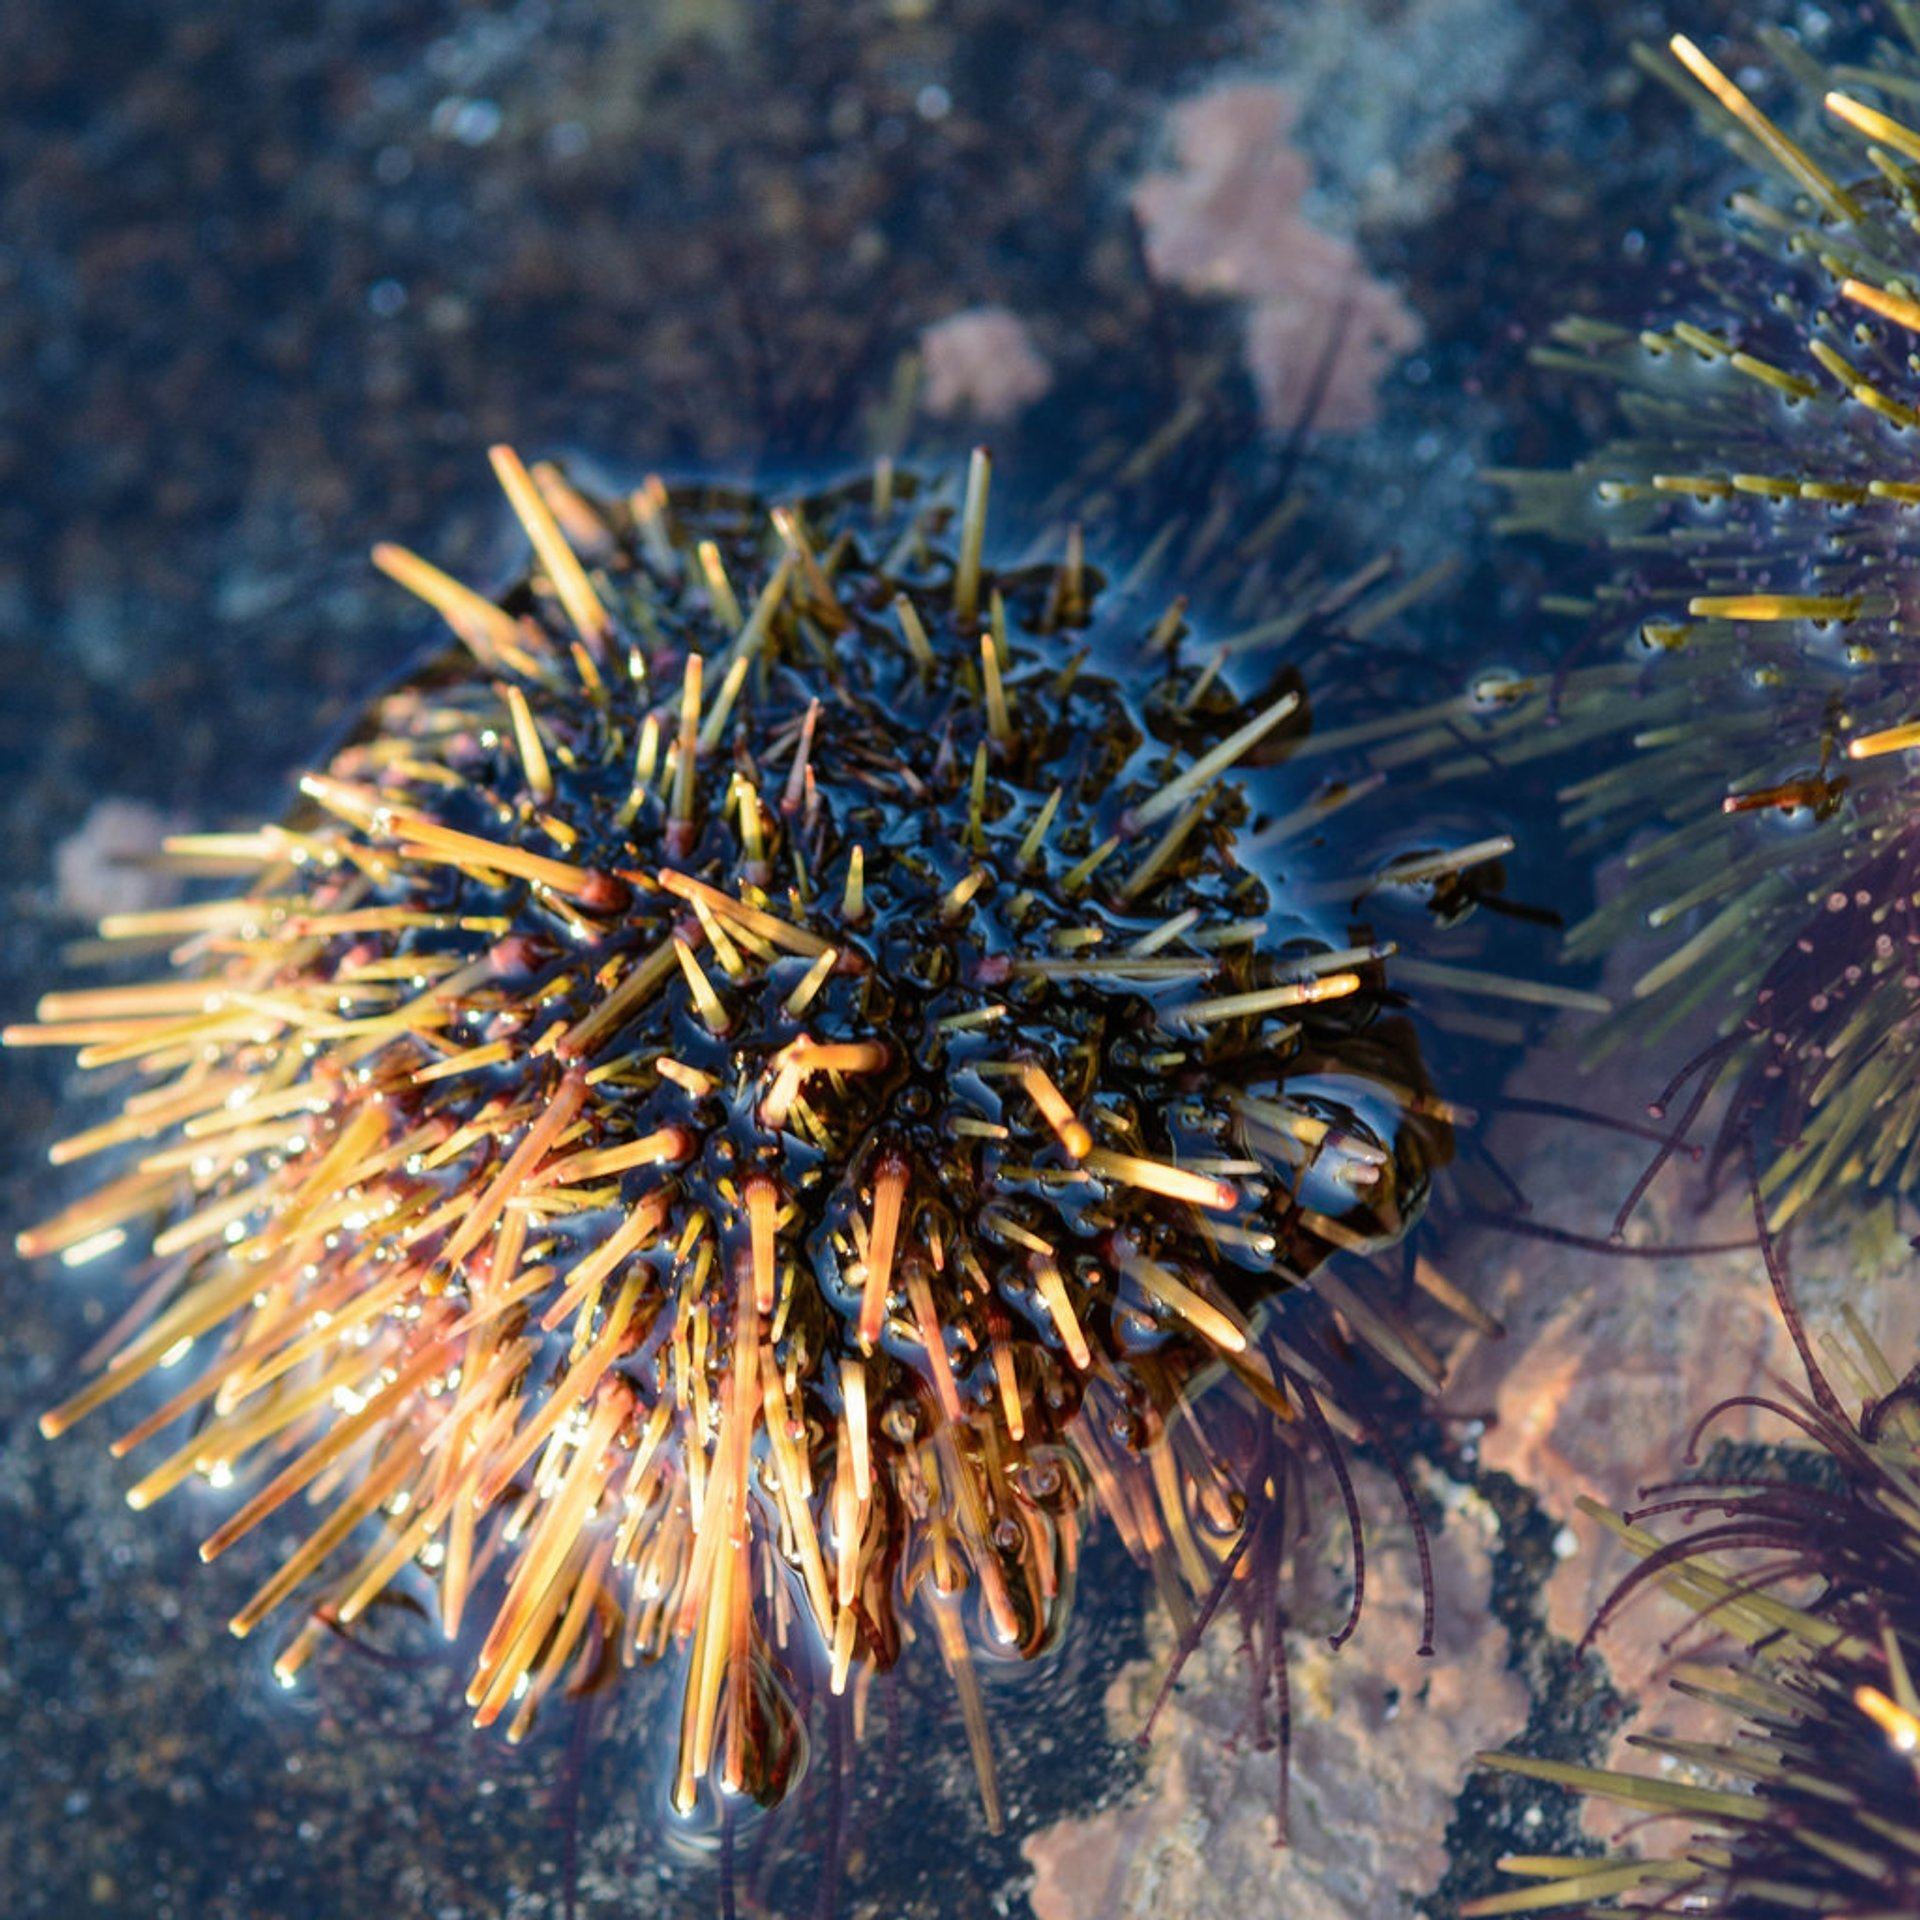 Sea Urchins in Norway 2020 - Best Time